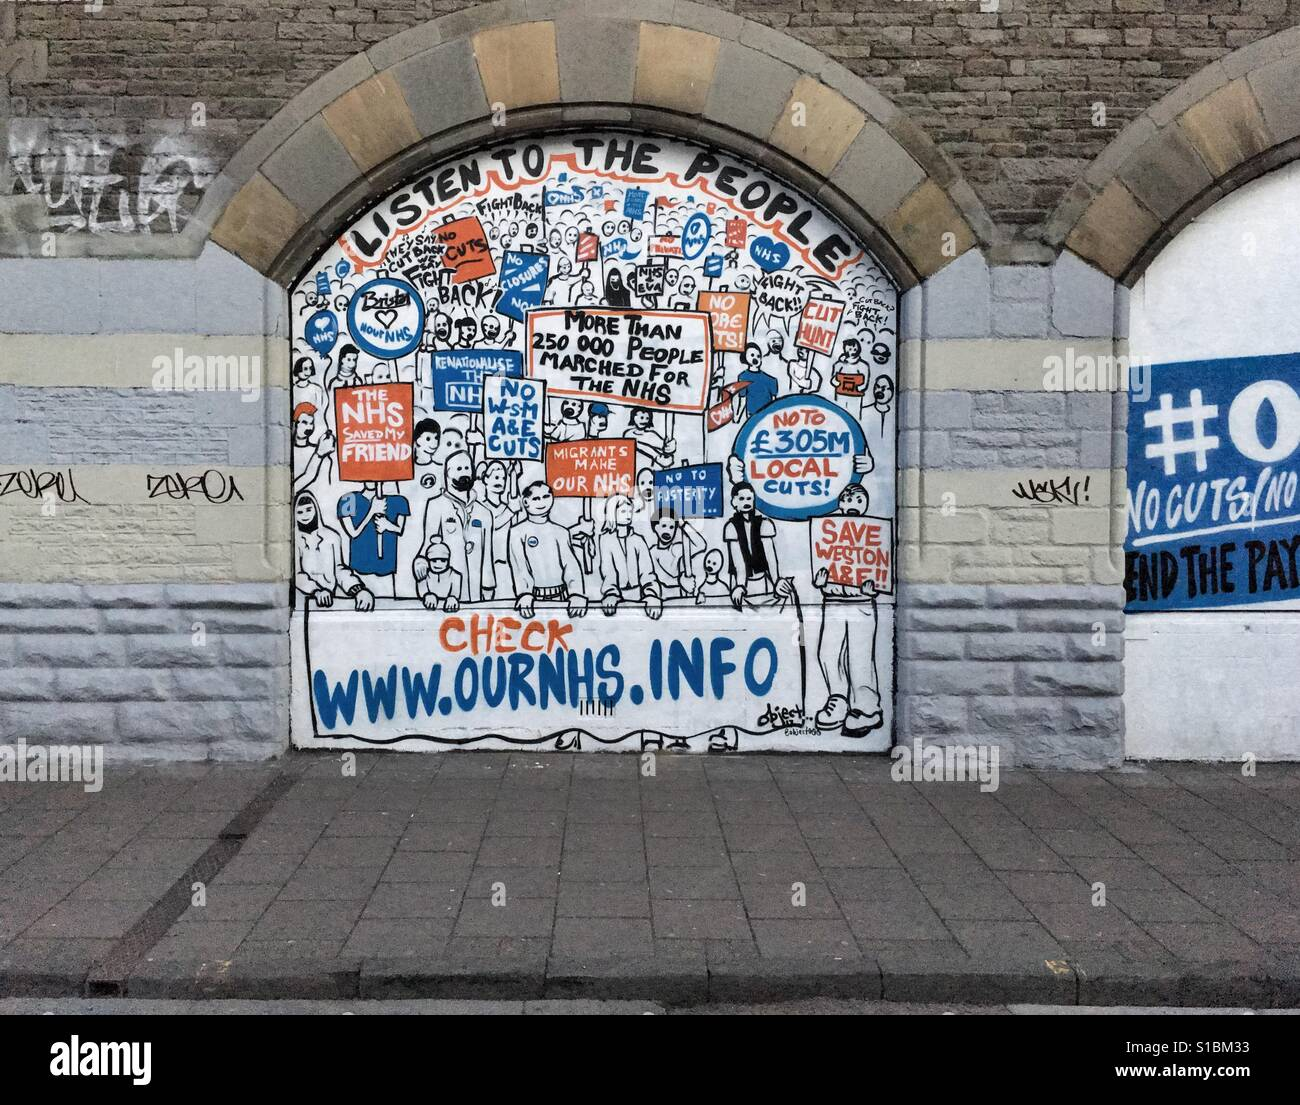 Street art opposing proposed cuts to the National Health Service in Stokes Croft, Bristol, UK - Stock Image